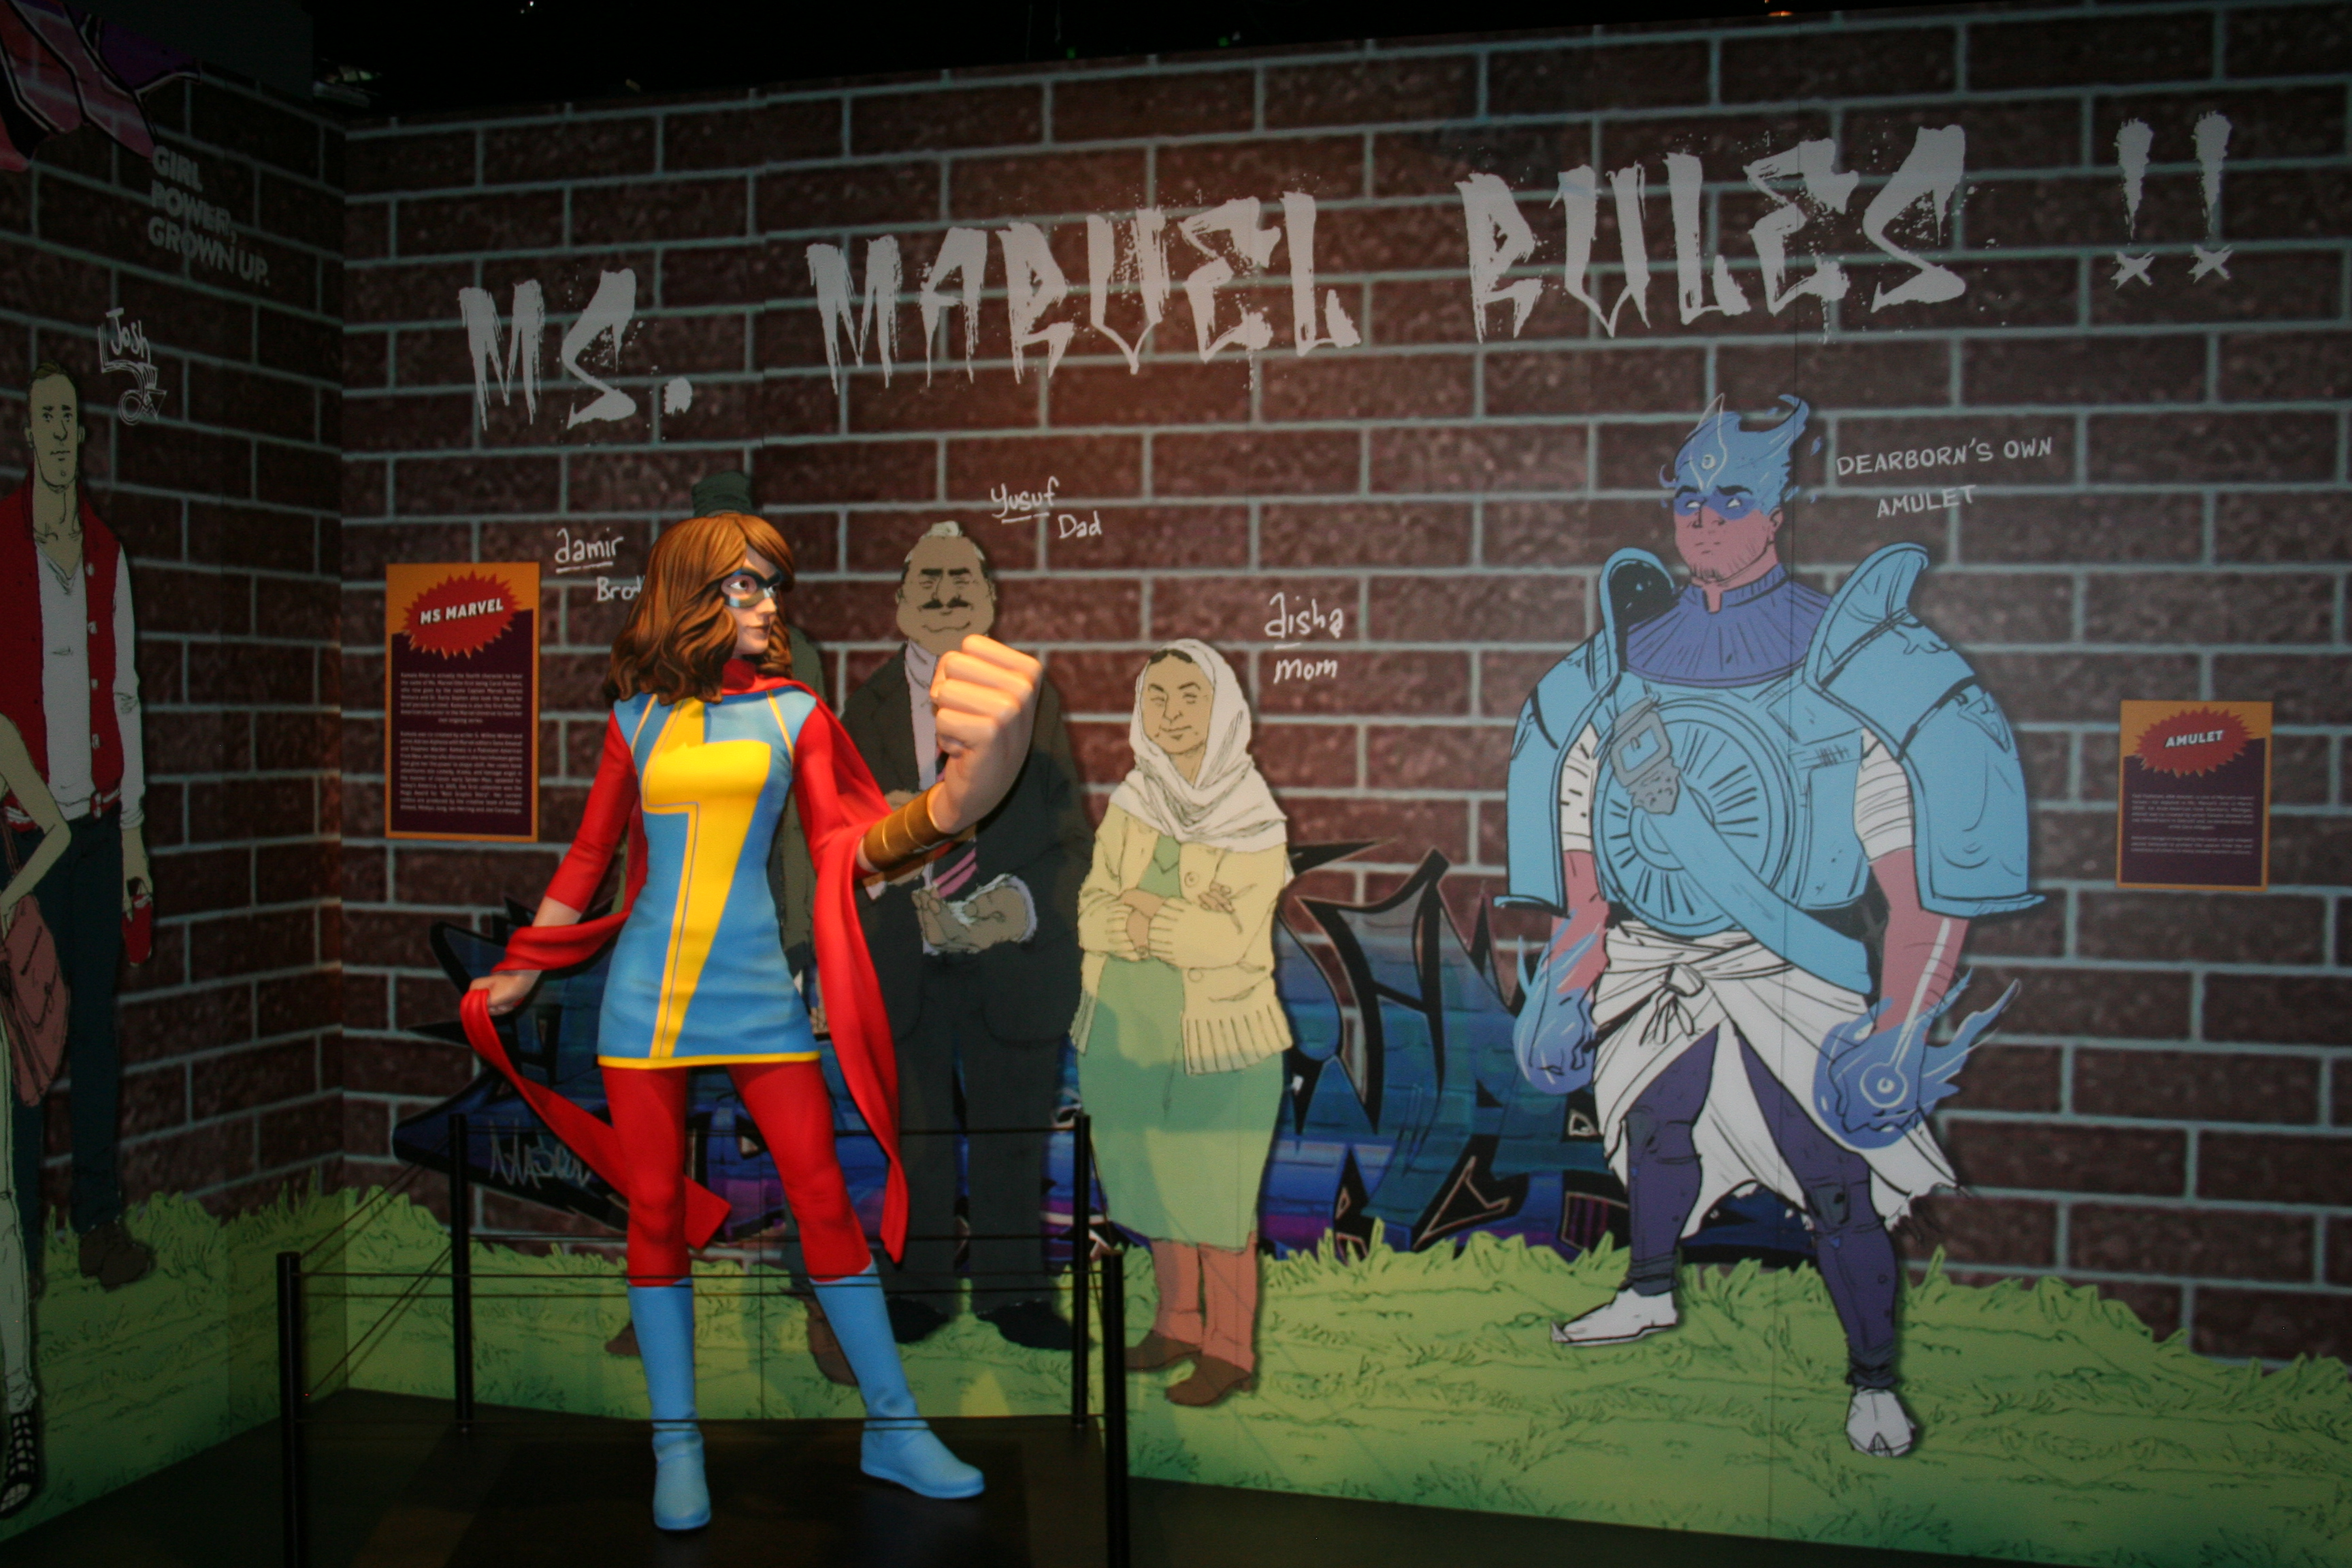 Ms. Marvel exhibit Marvel Universe of Superheroes Henry Ford Museum of Innovation Dearborn MI